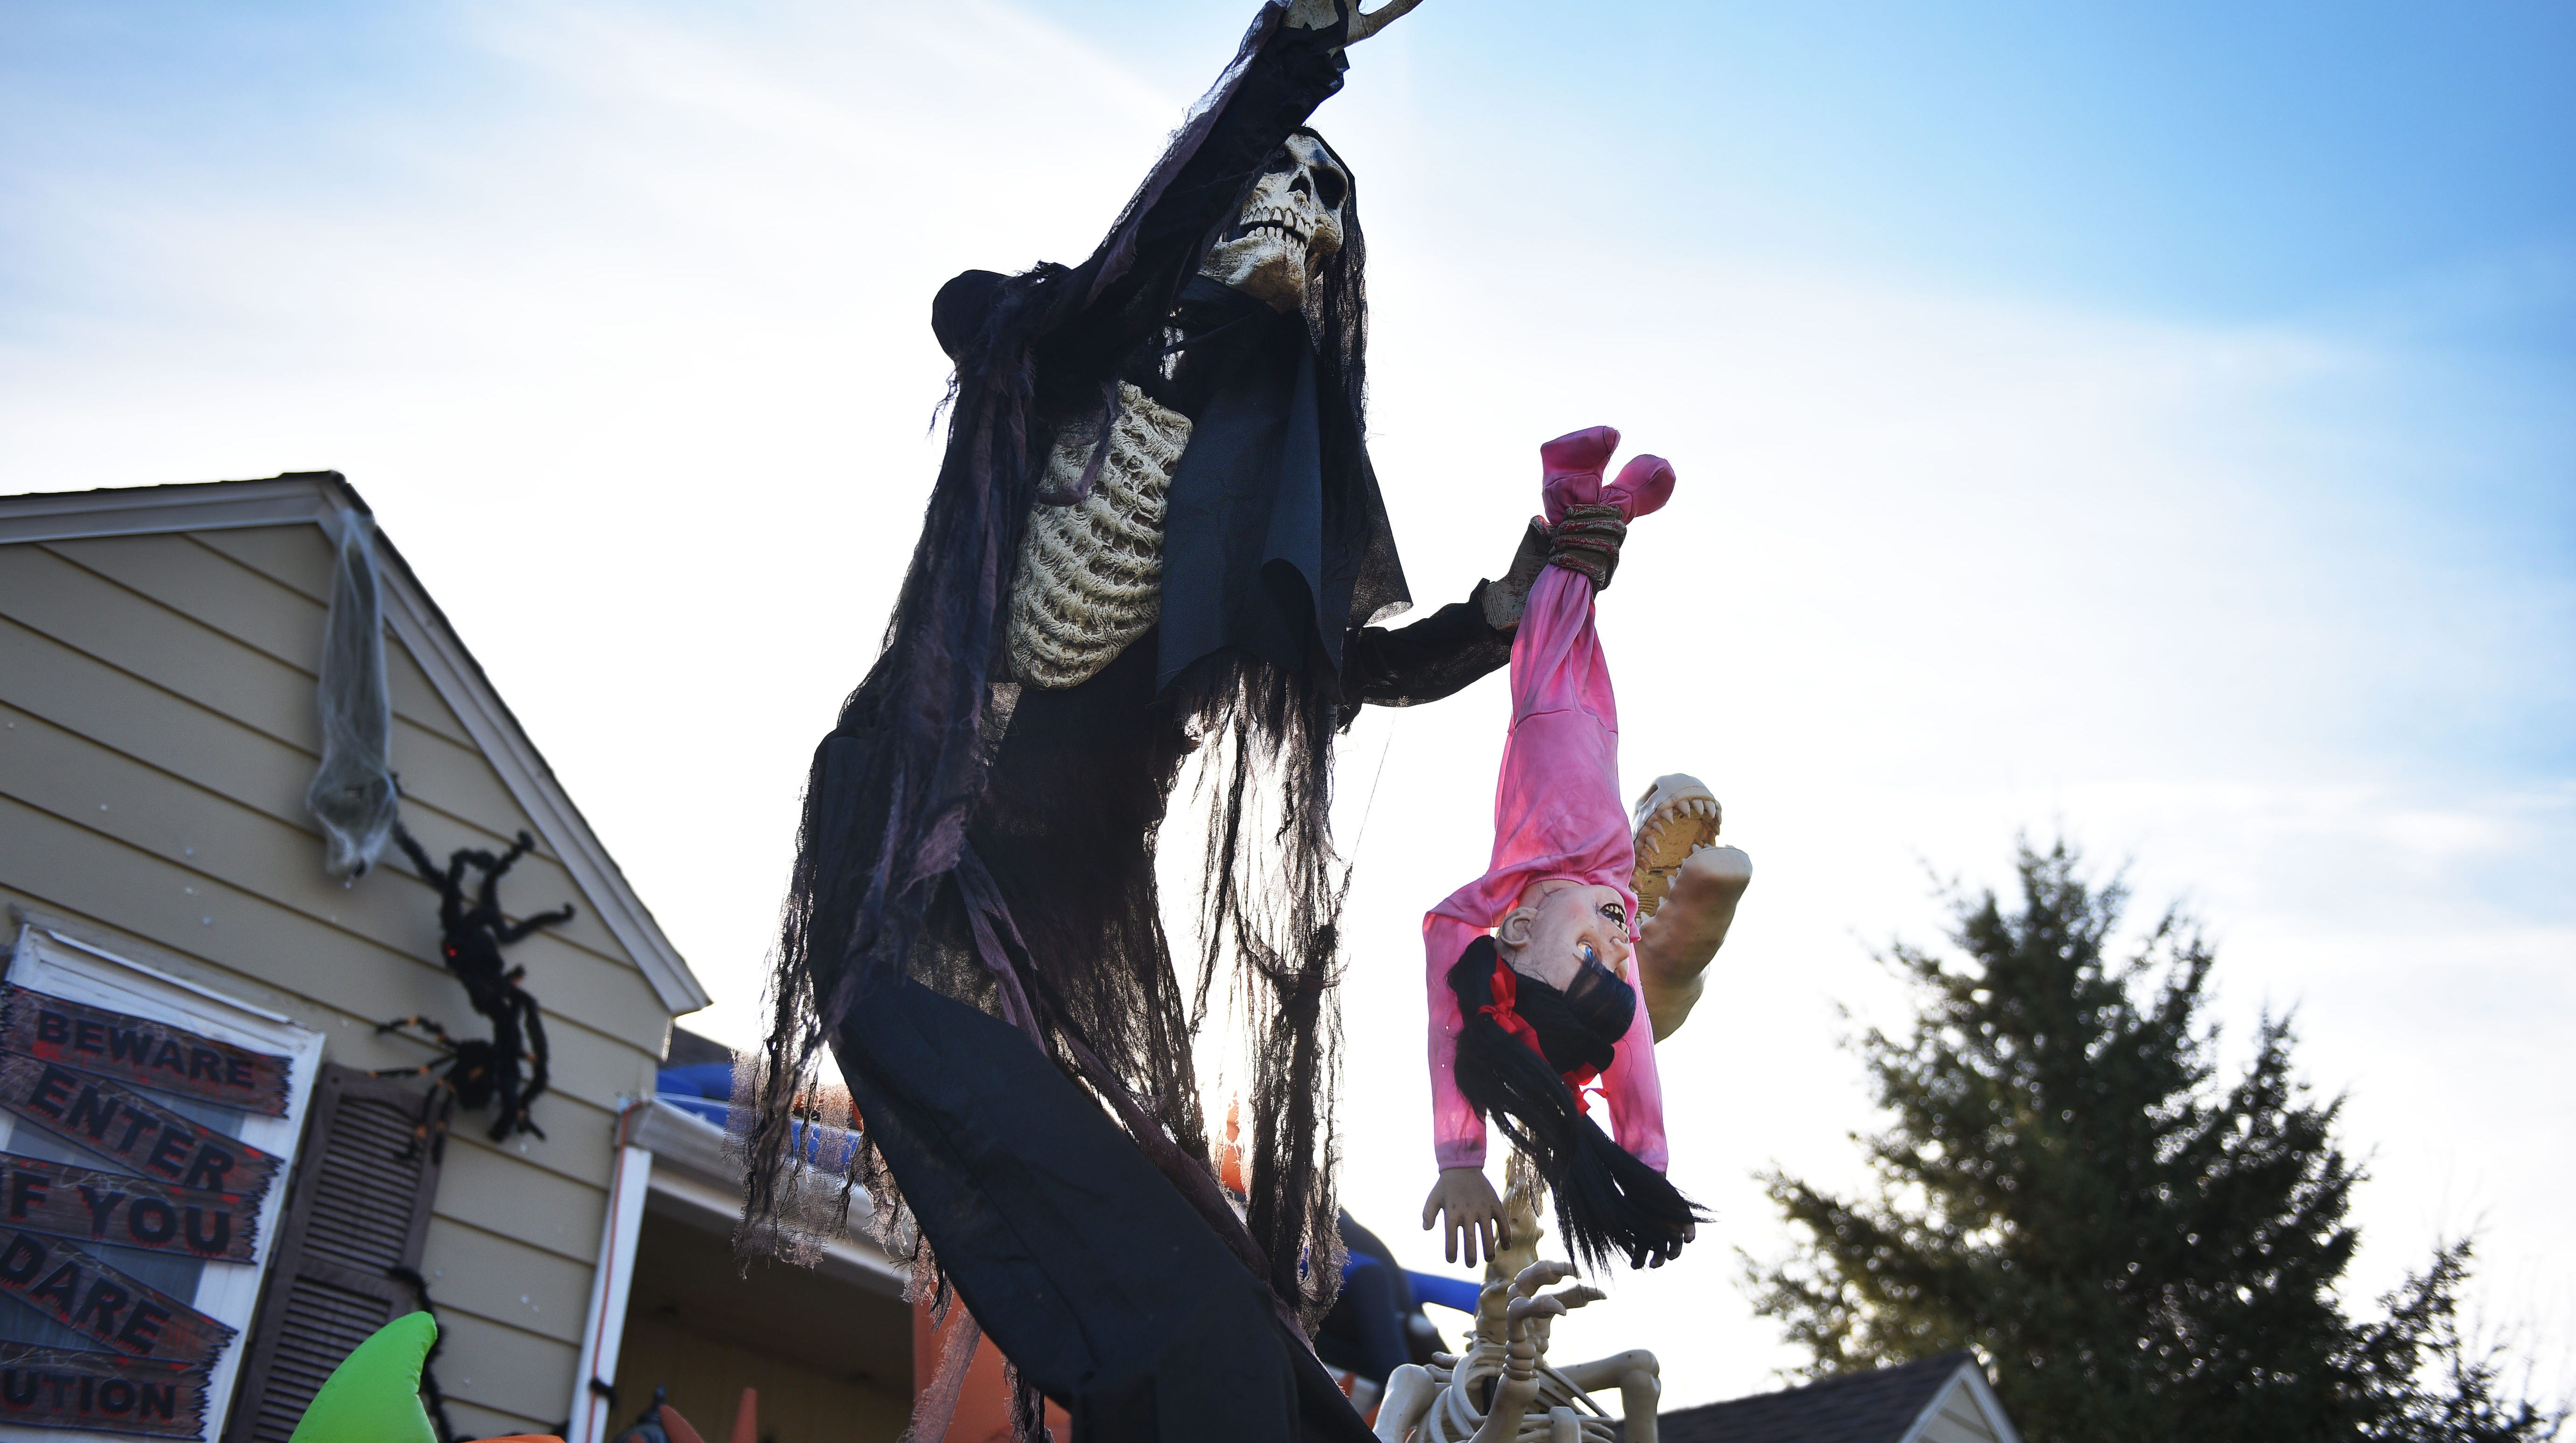 photos: sioux falls homes decorated for halloween